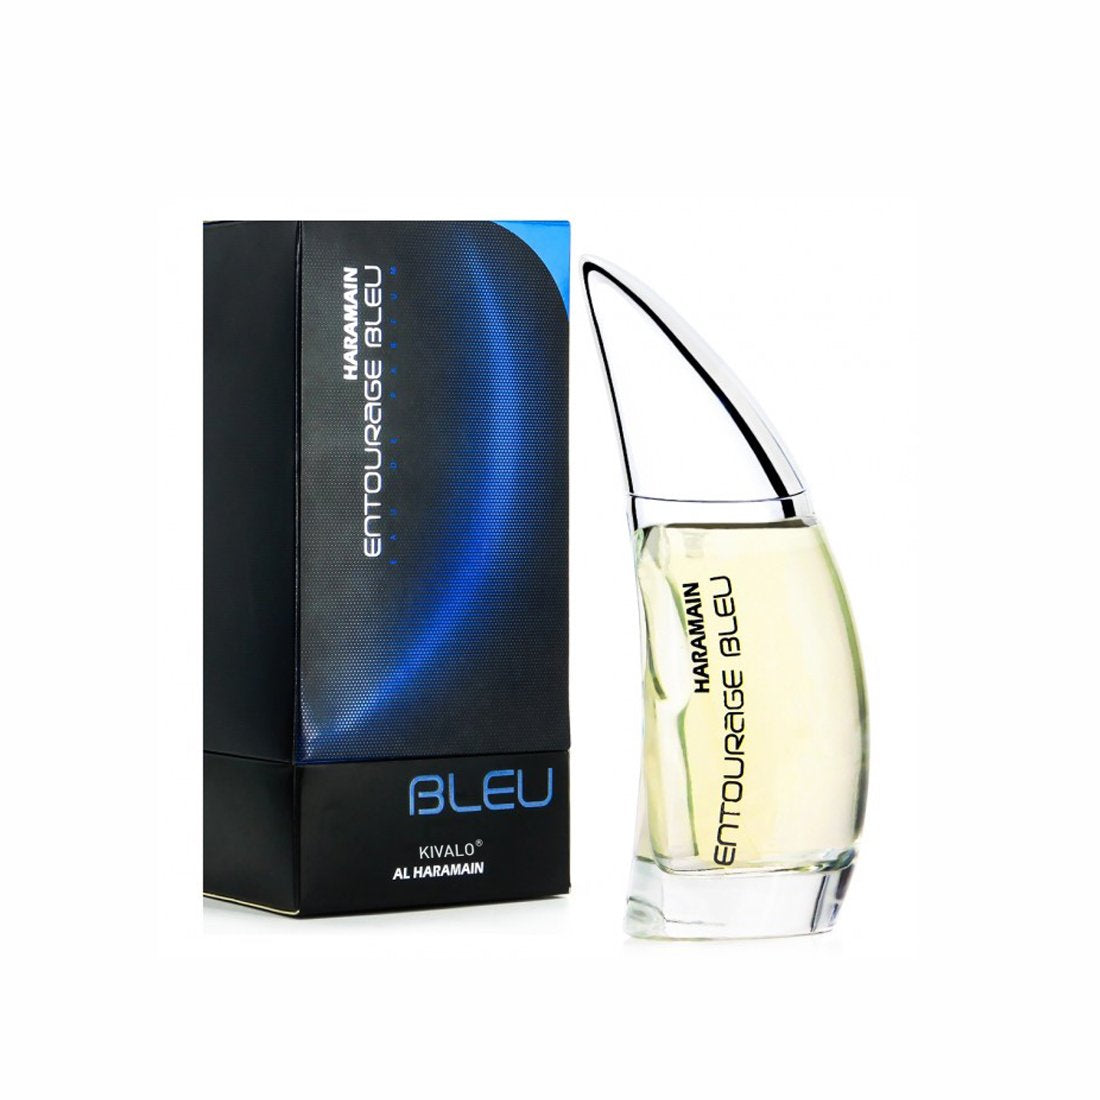 Al Haramain Entourage Bleu Perfume Spray - 100 ml